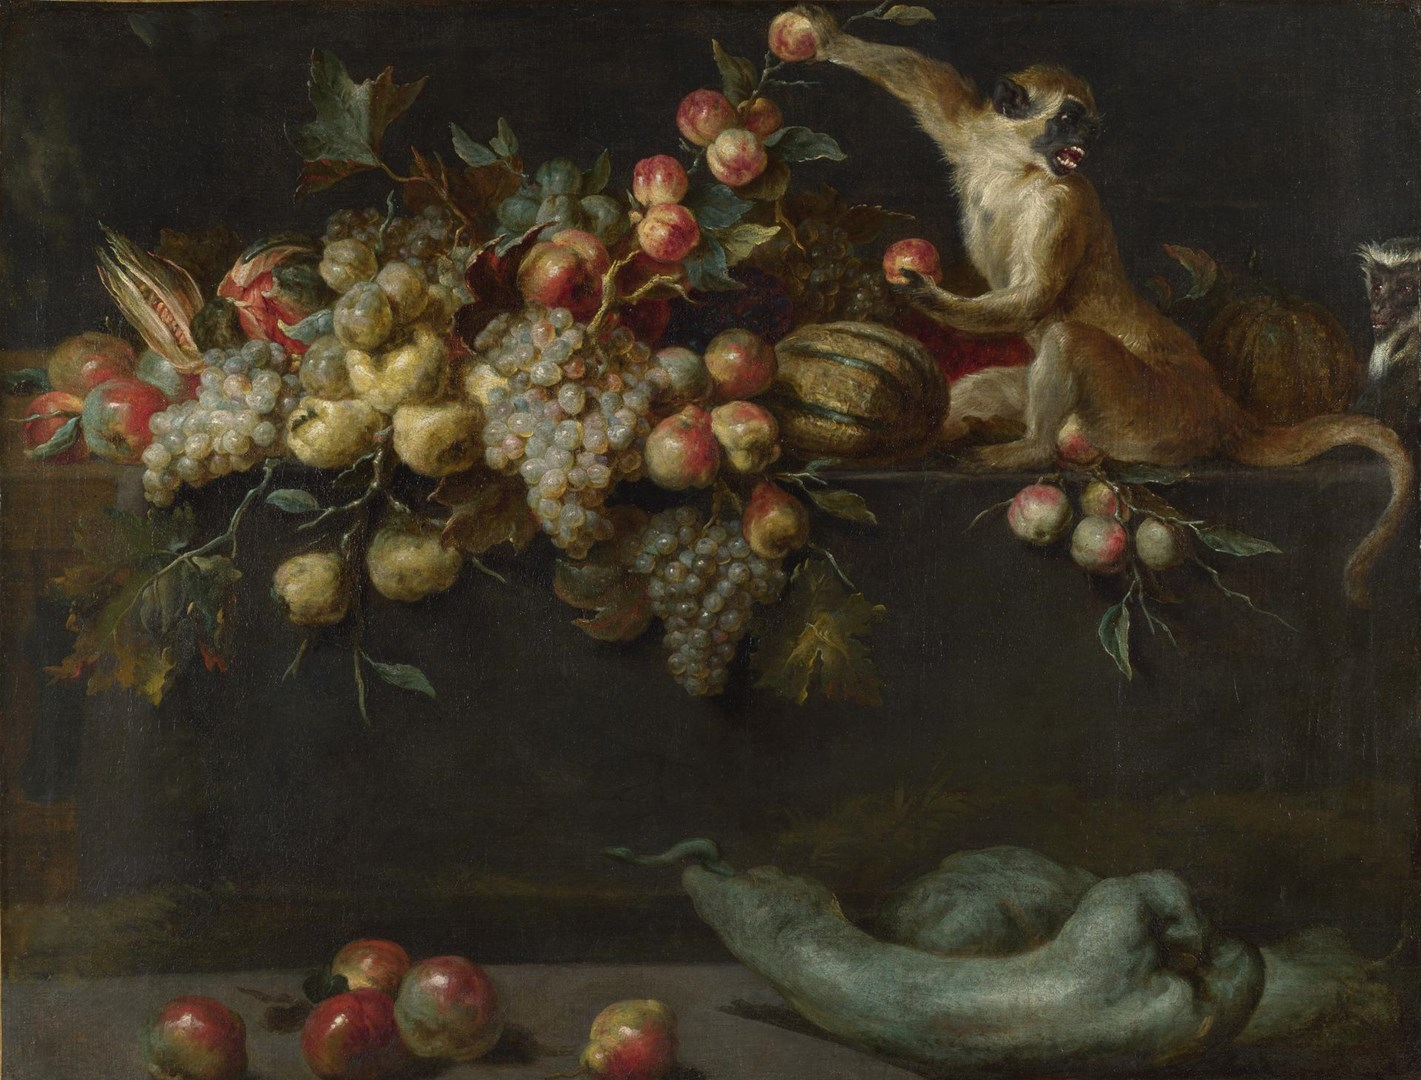 Still Life of Fruit and Vegetables with Two Monkeys by Jan Roos